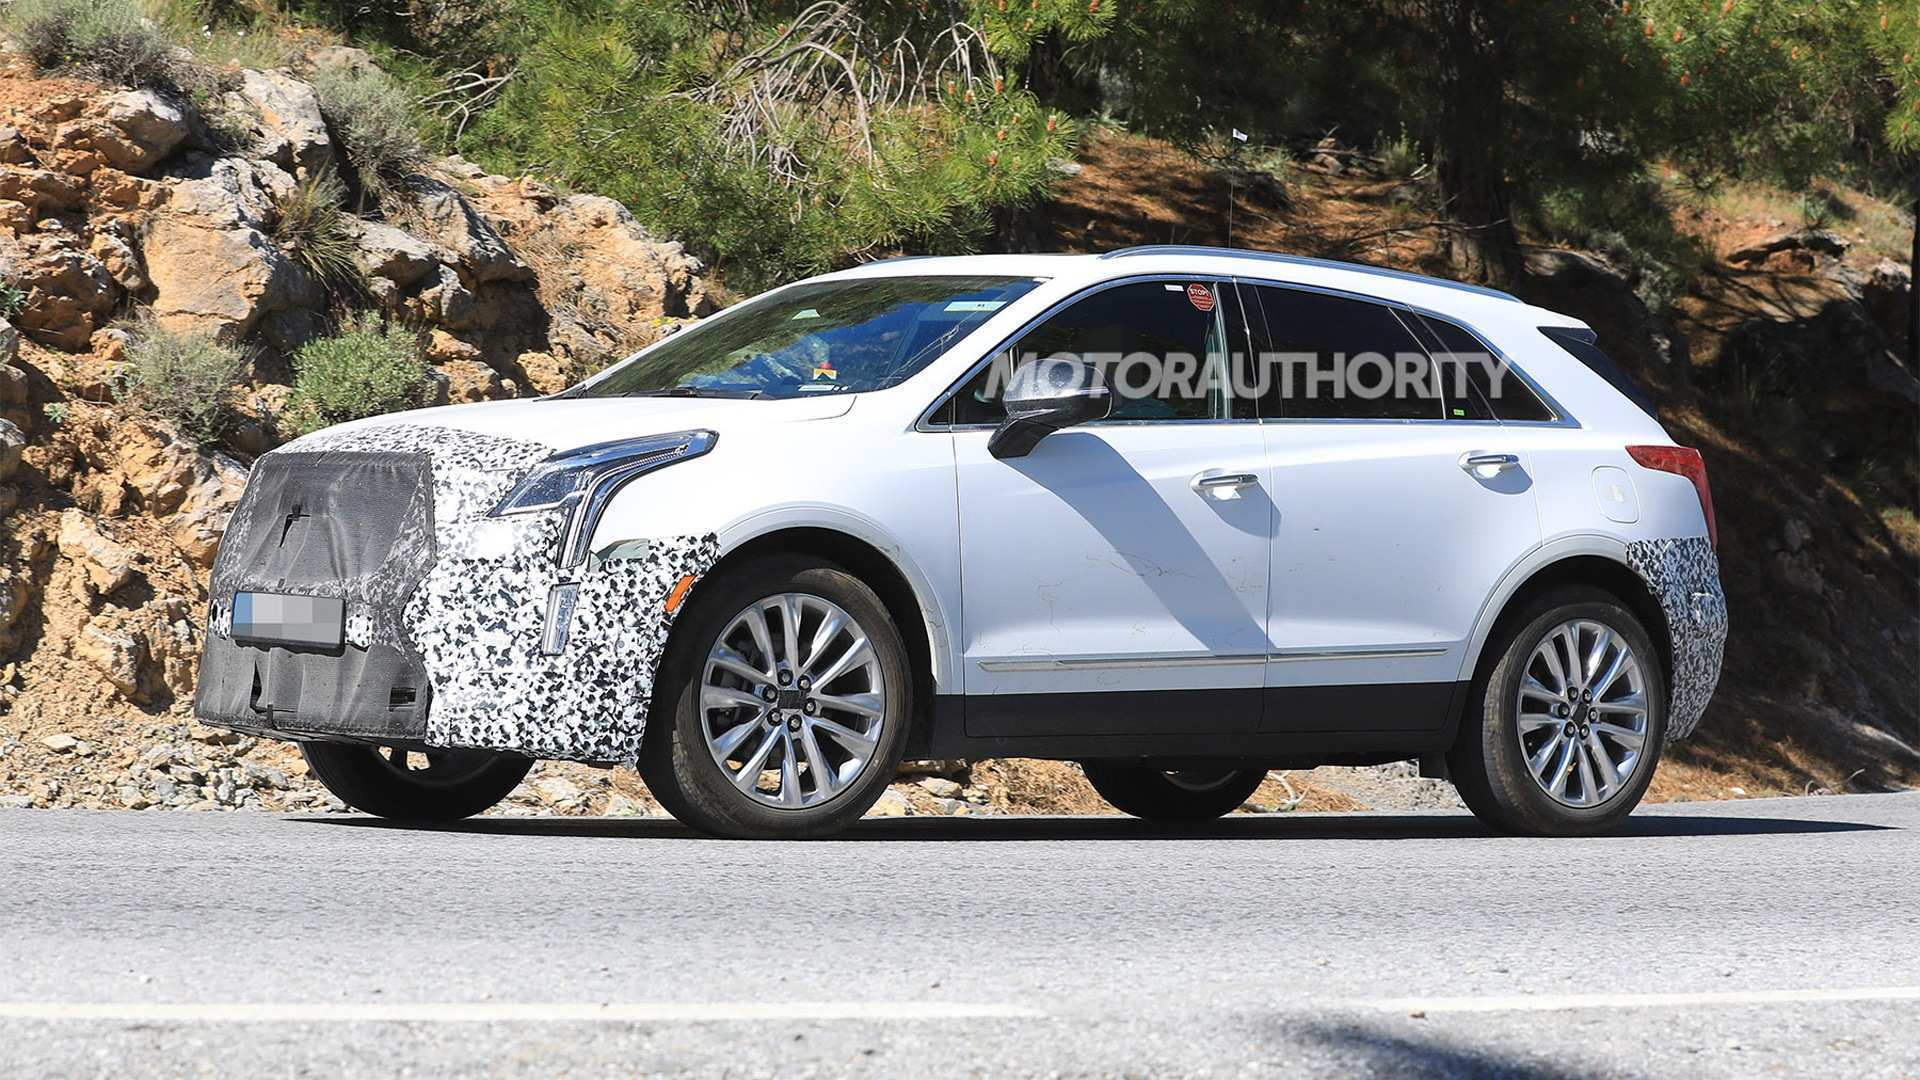 30 All New Spy Shots Cadillac Xt5 Pricing